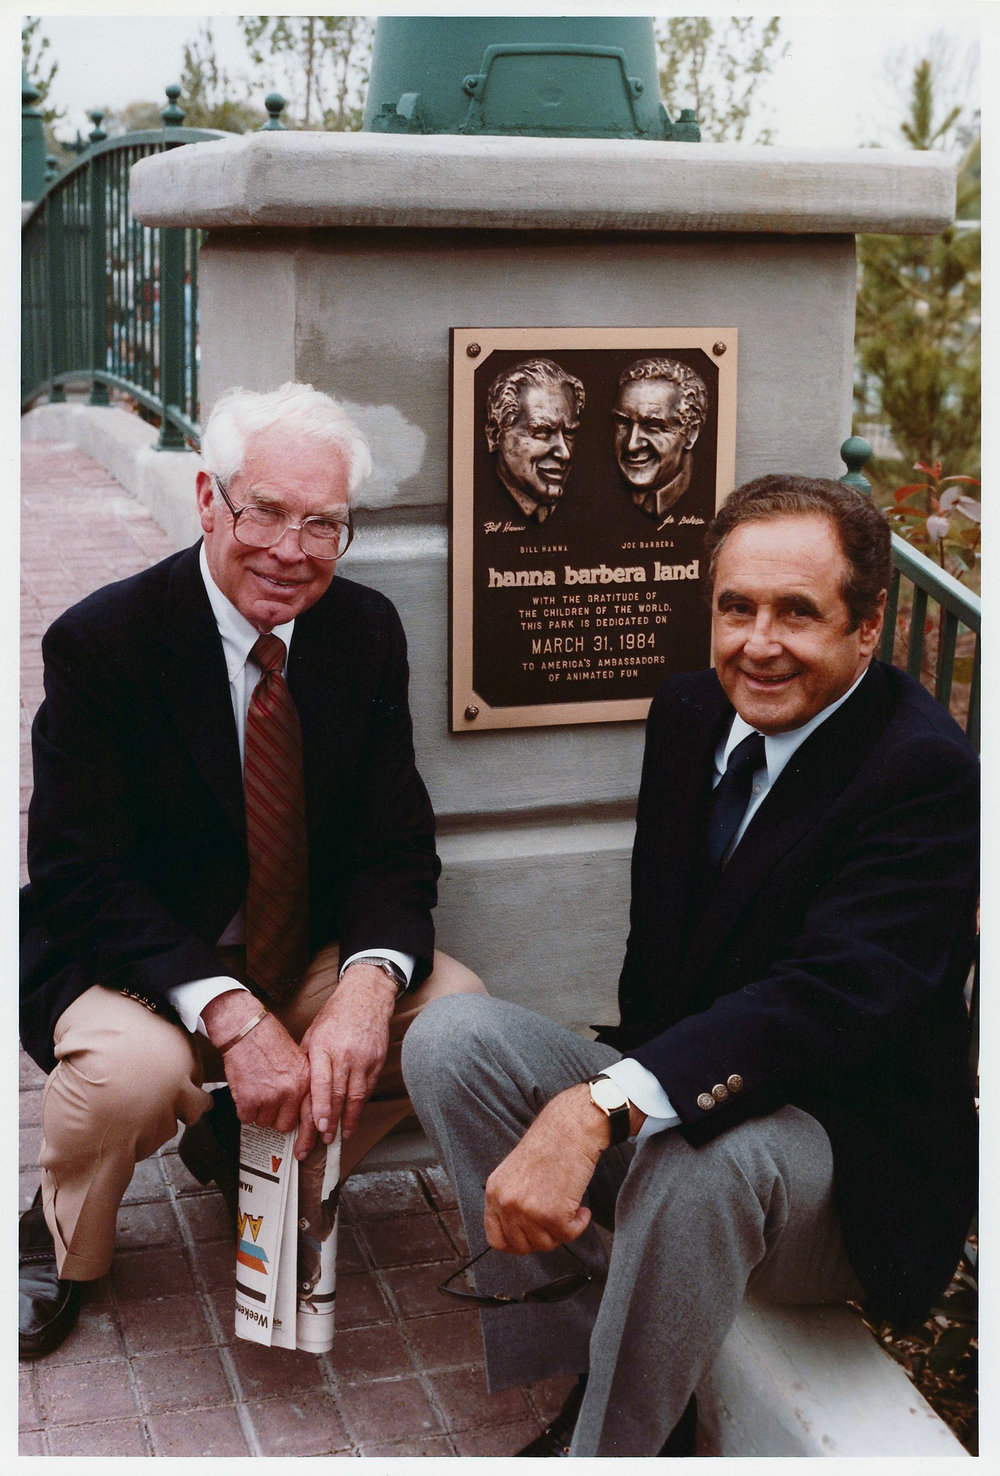 BILL HANNA & JOE BARBERA AT HANNA BARBERA LAND